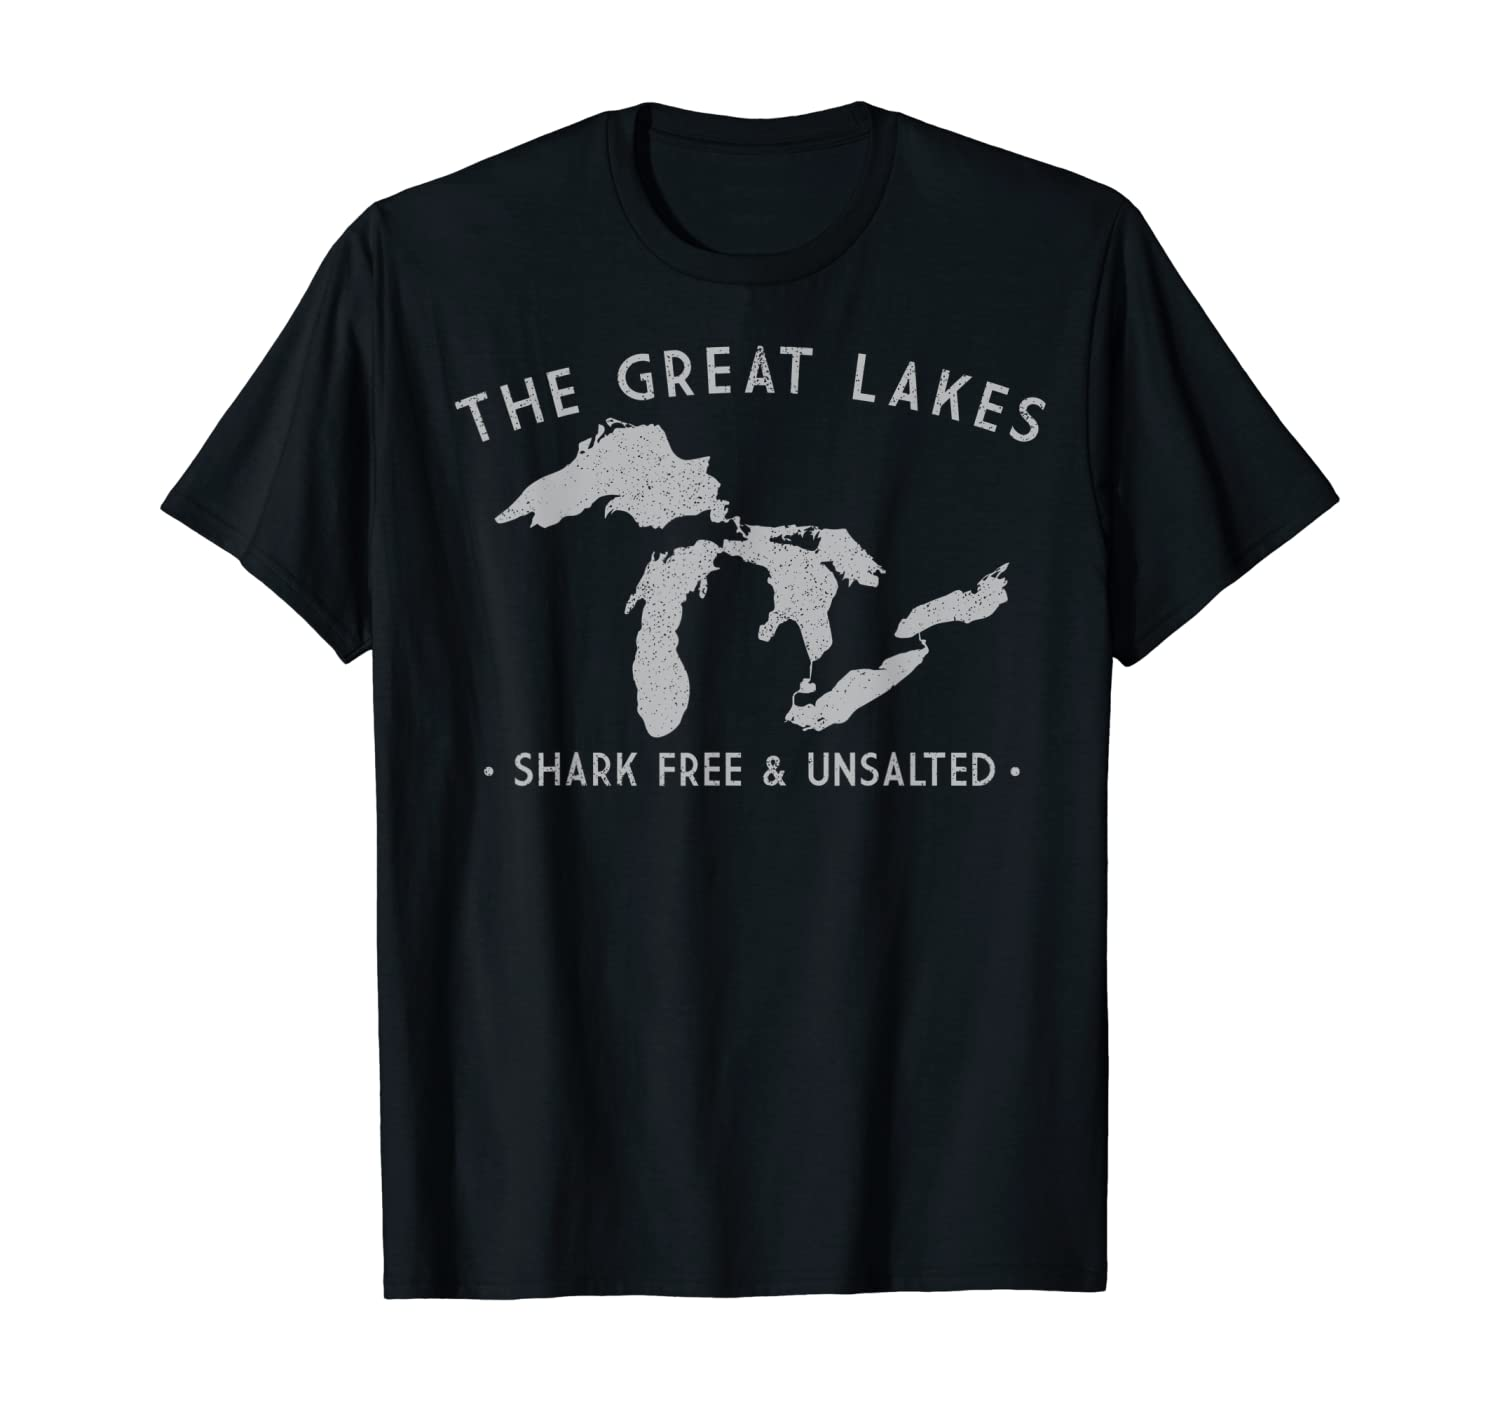 Great Lakes Shark Free and Unsalted Funny Vintage T-Shirt